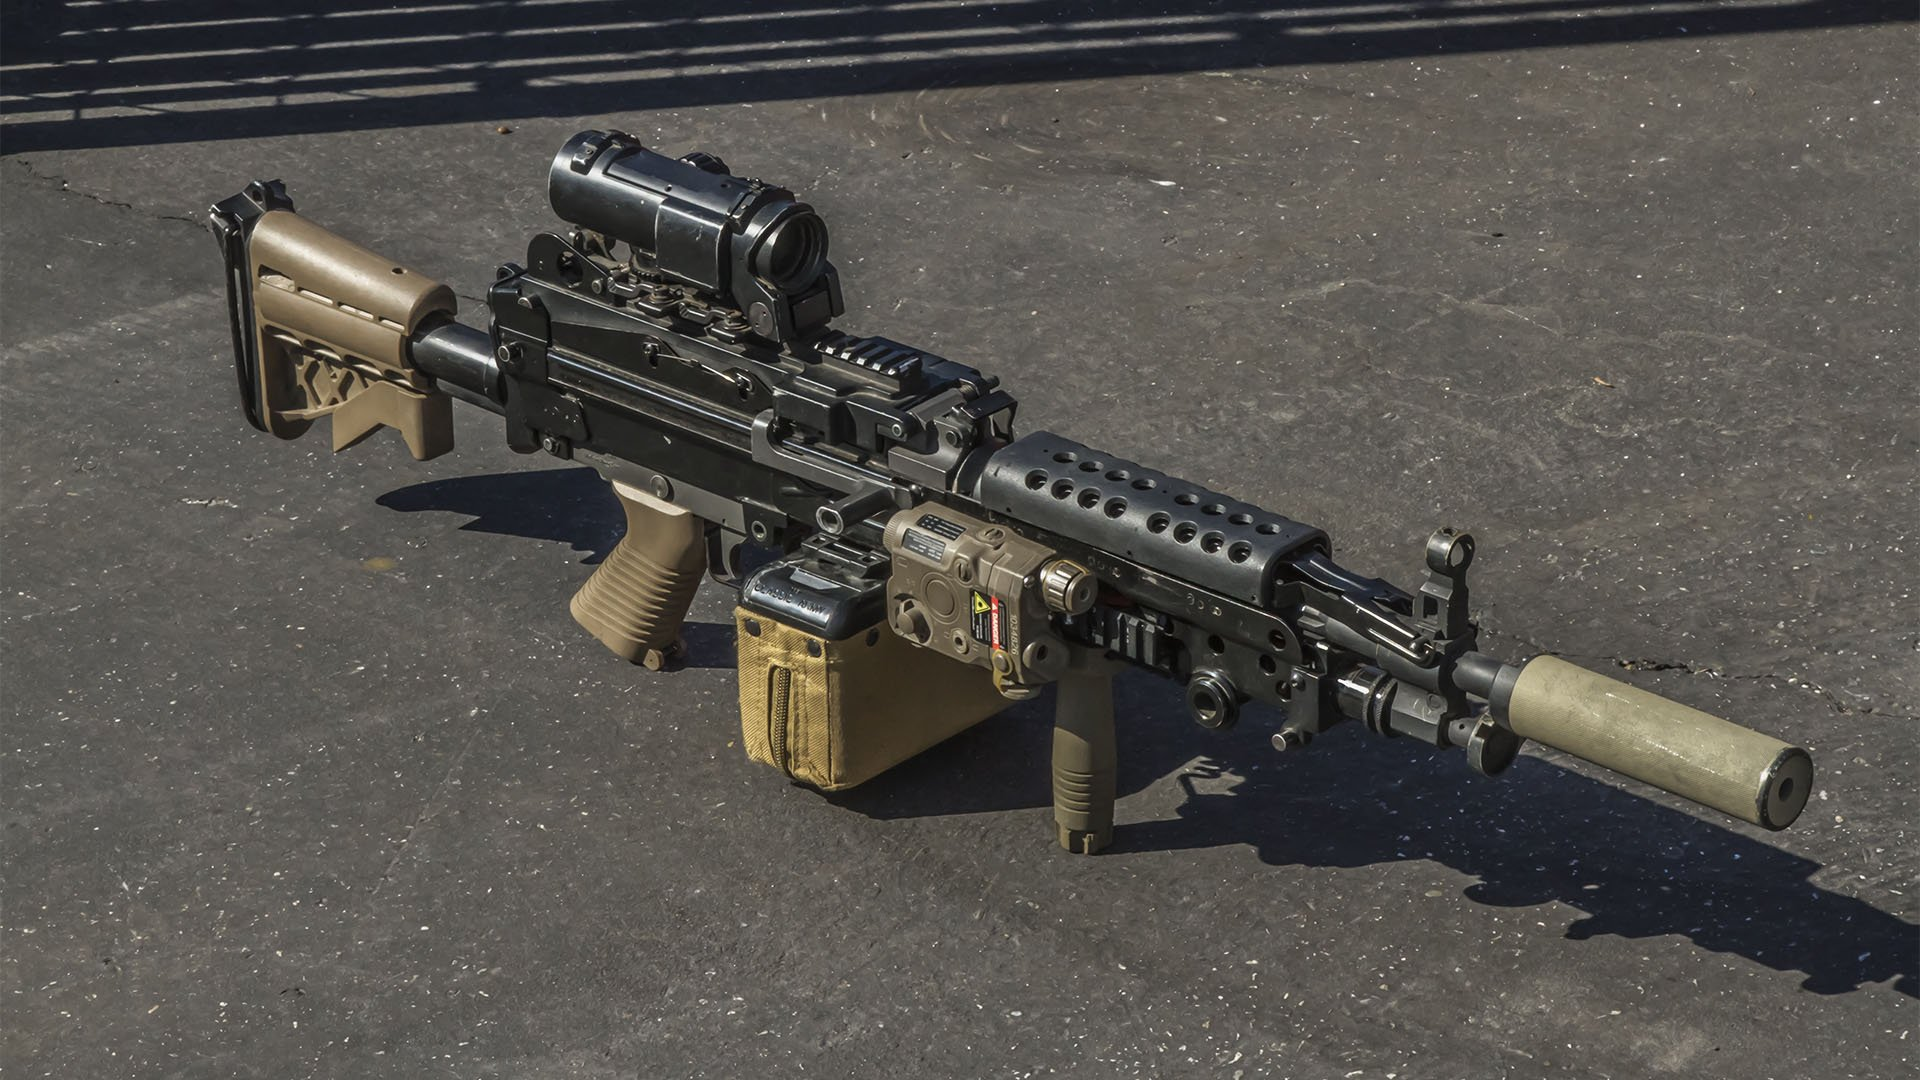 Our Tech Taylor's M249 by Classic Army